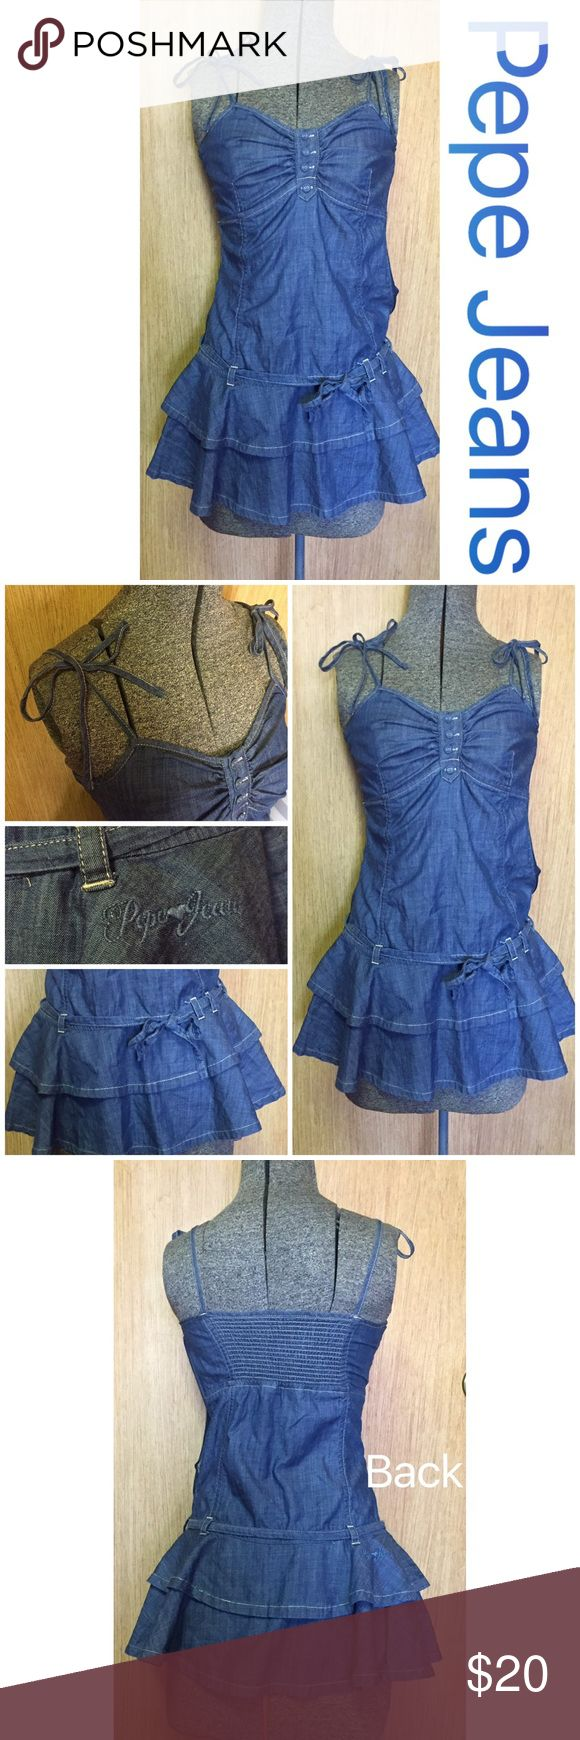 """PePe Jeans💥Denim Dress PePe Jeans Denim Dress size XS. The straps on the shoulder are ties and there is a side zipper. There is a tie on the bottom front of dress. The front top has Denim buttons and the top back has stretch. This dress can be worn with or without leggings. Top to bottom it measures 23.5"""" inches not including the ties. The bus area is 12"""" inches across laying flat but it has stretch on the back incase you are bustier. Double layer bottom and totally adorable!! Pepe Jeans…"""